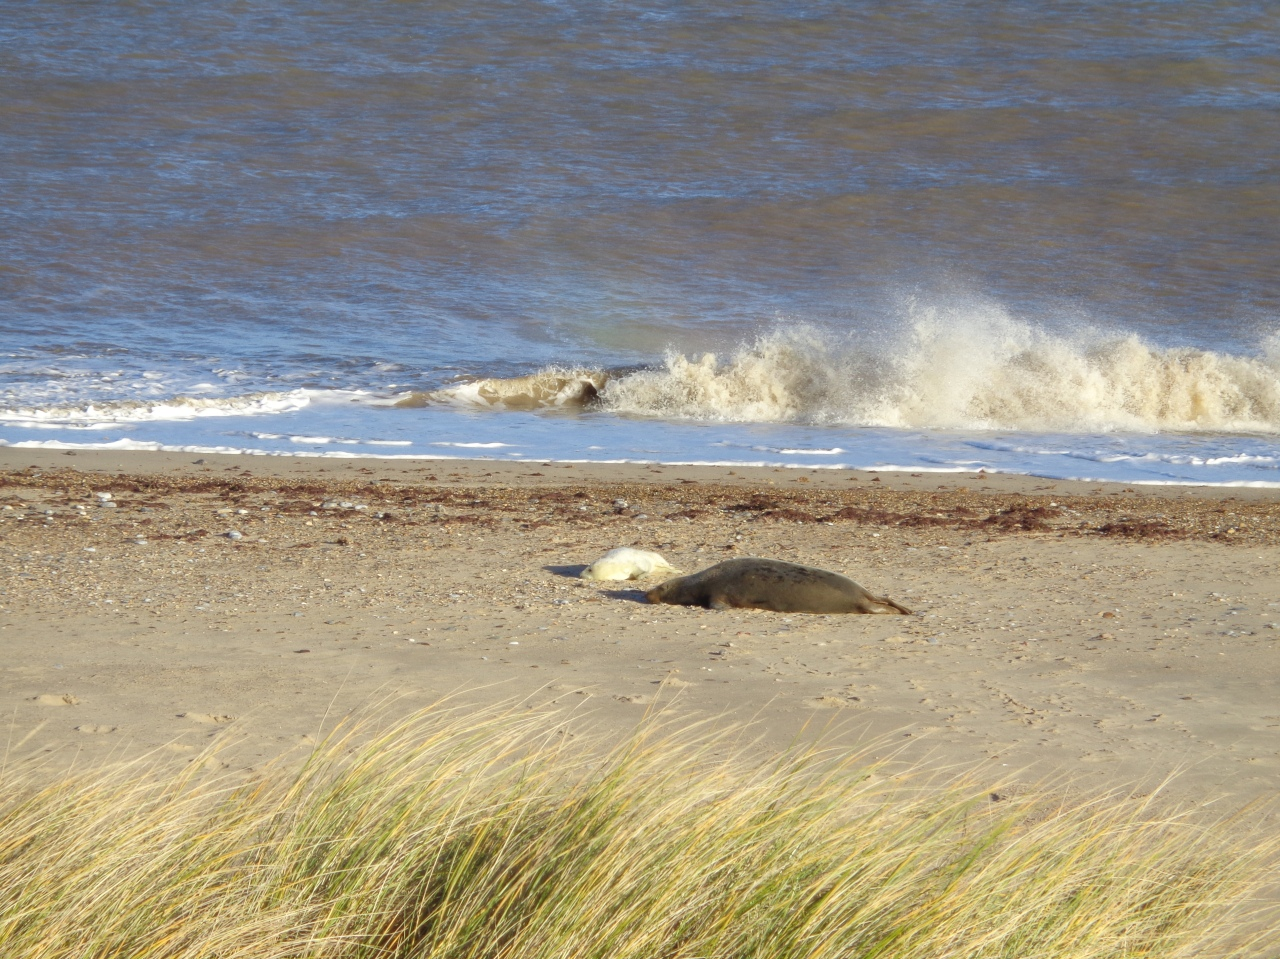 Seal, pup and breaking wave south Norfolk